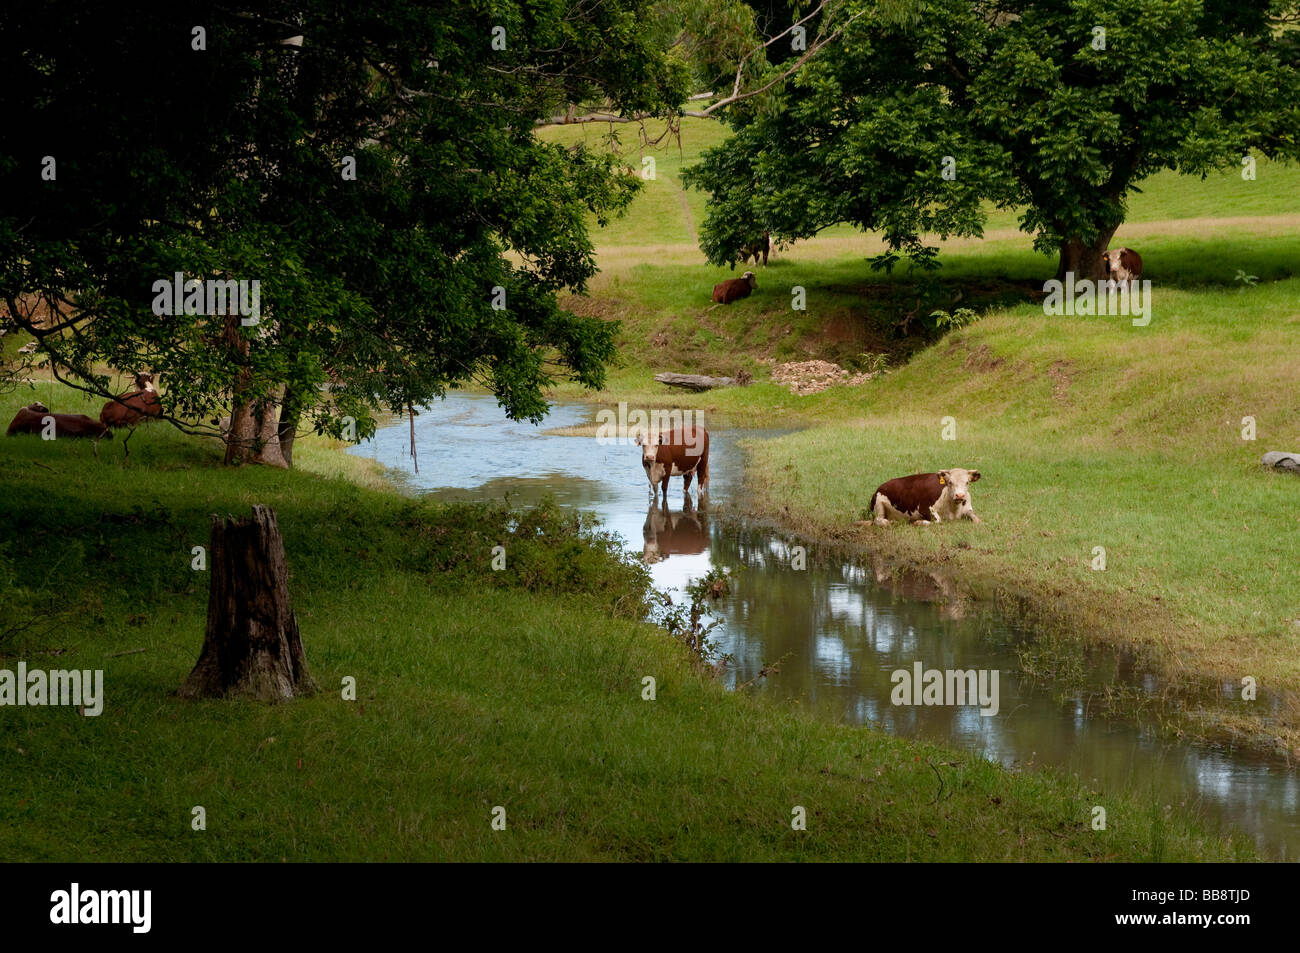 Pastoral scene in the Inland countryside of Coffs Harbour region NSW Australia - Stock Image